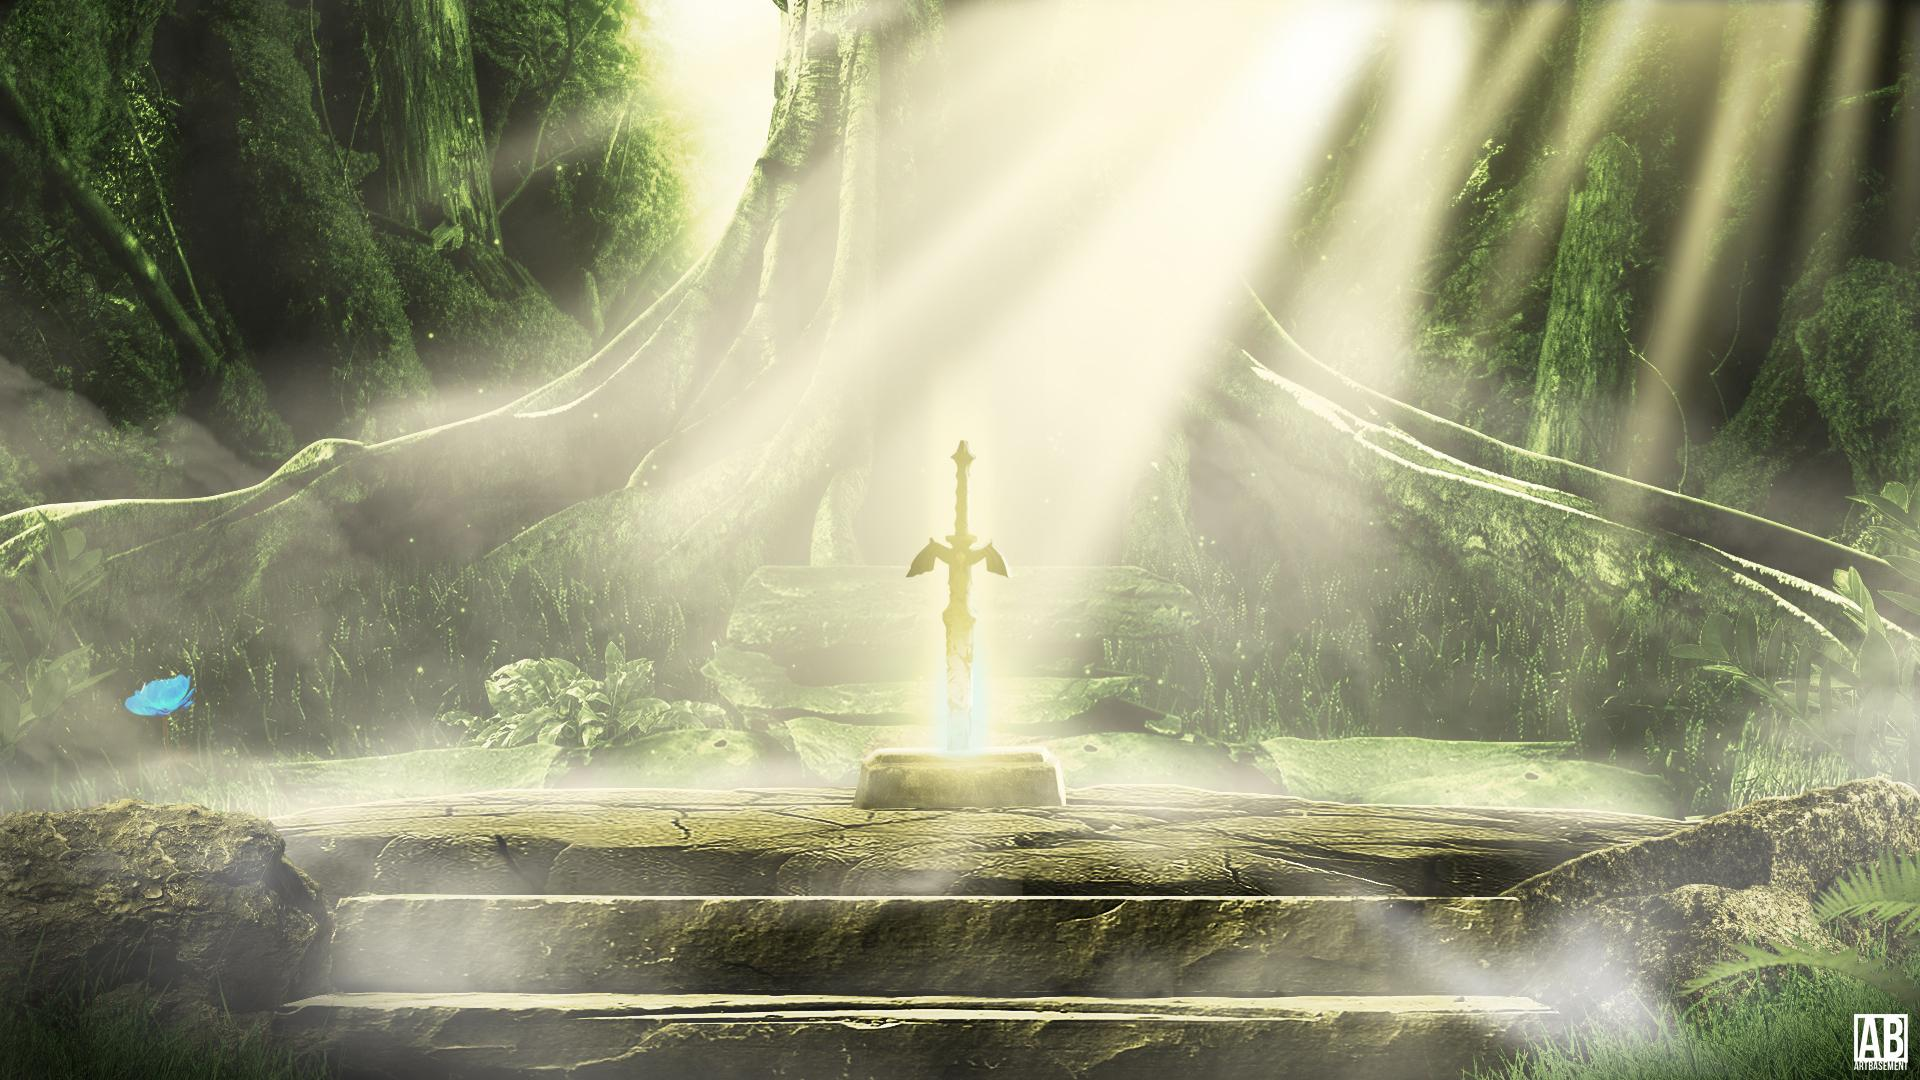 Legend Of Zelda Hd Wallpaper Posted By Ethan Simpson